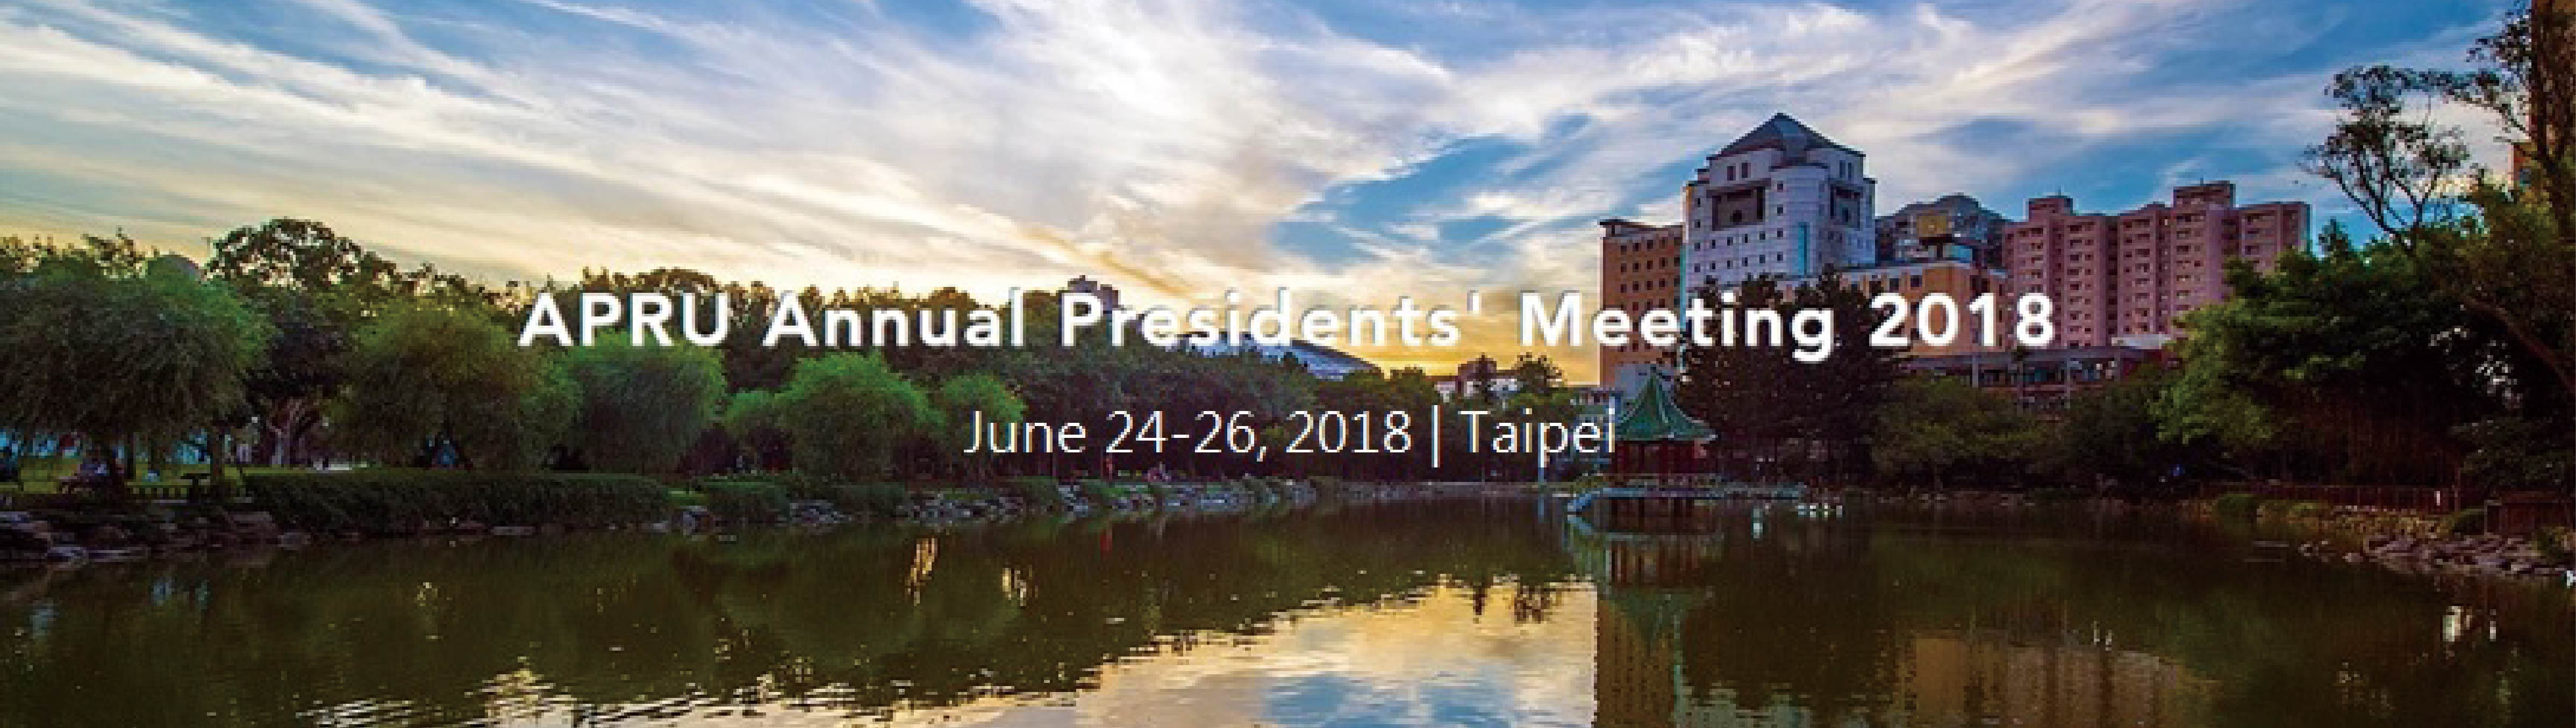 APRU Annual President's Meeting 2018